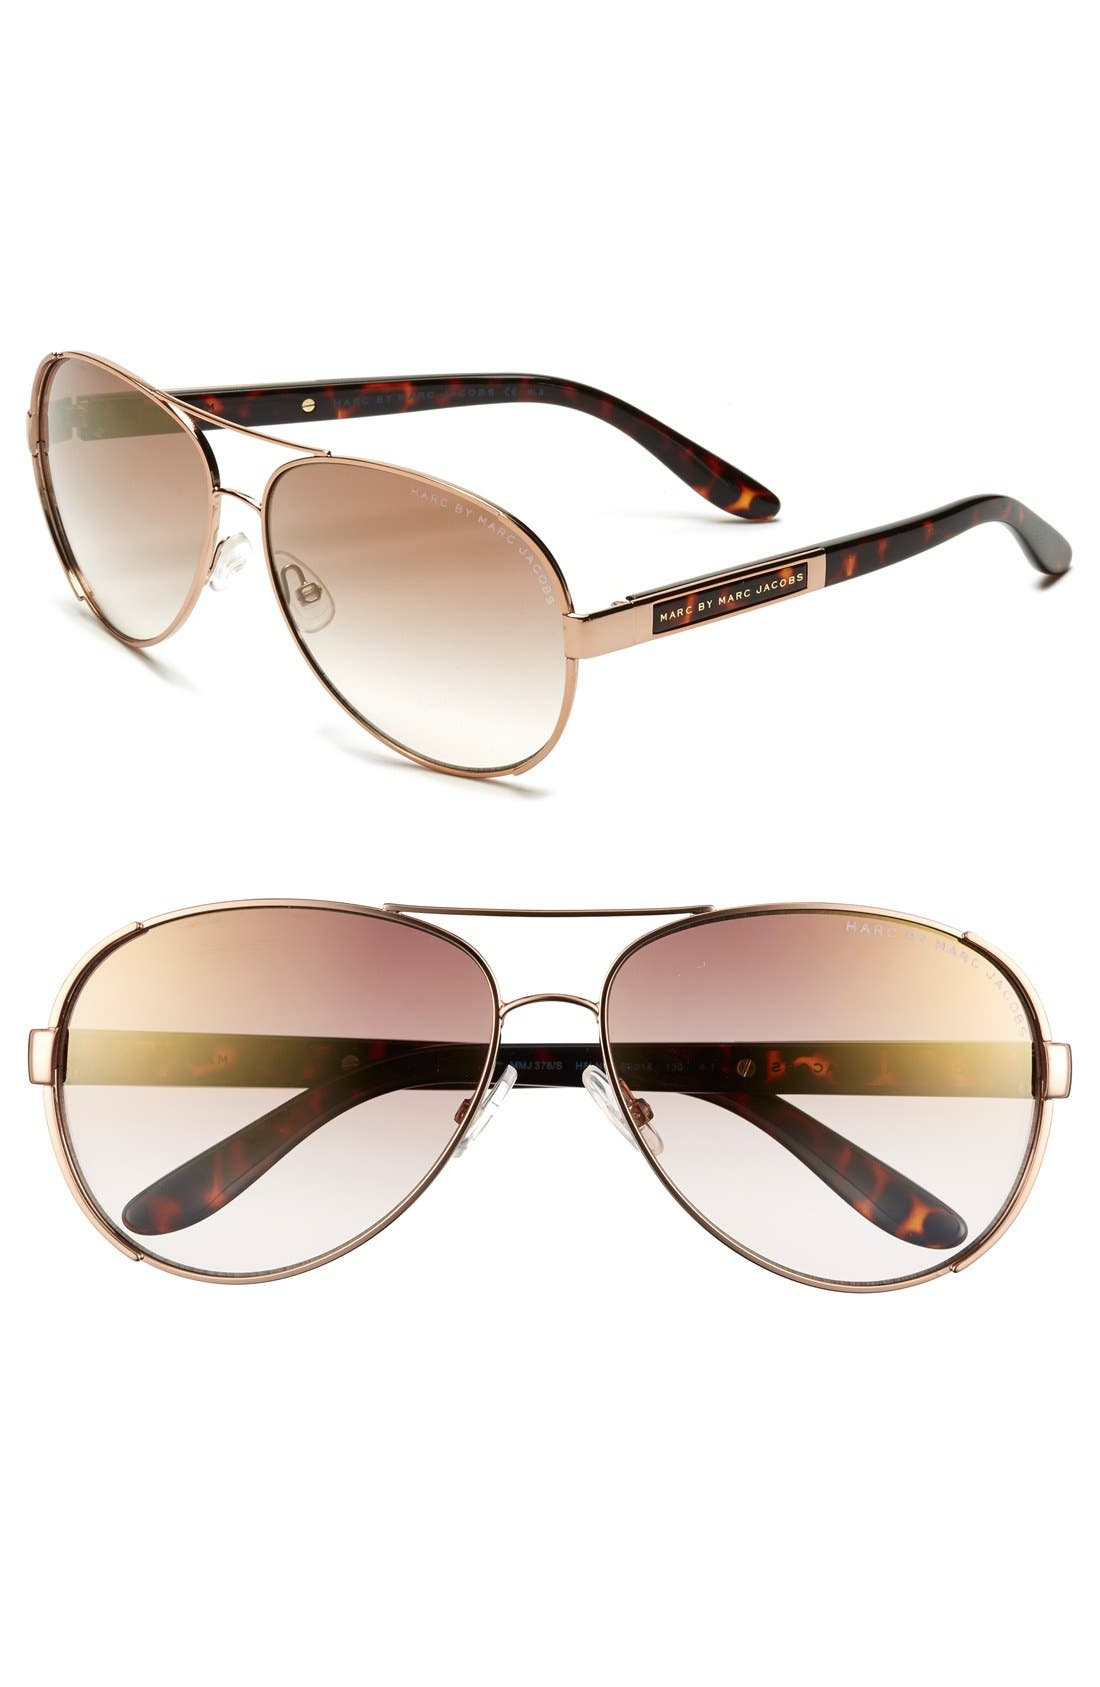 Alternate Image 1 Selected - MARC BY MARC JACOBS 60mm Stainless Steel Aviator Sunglasses